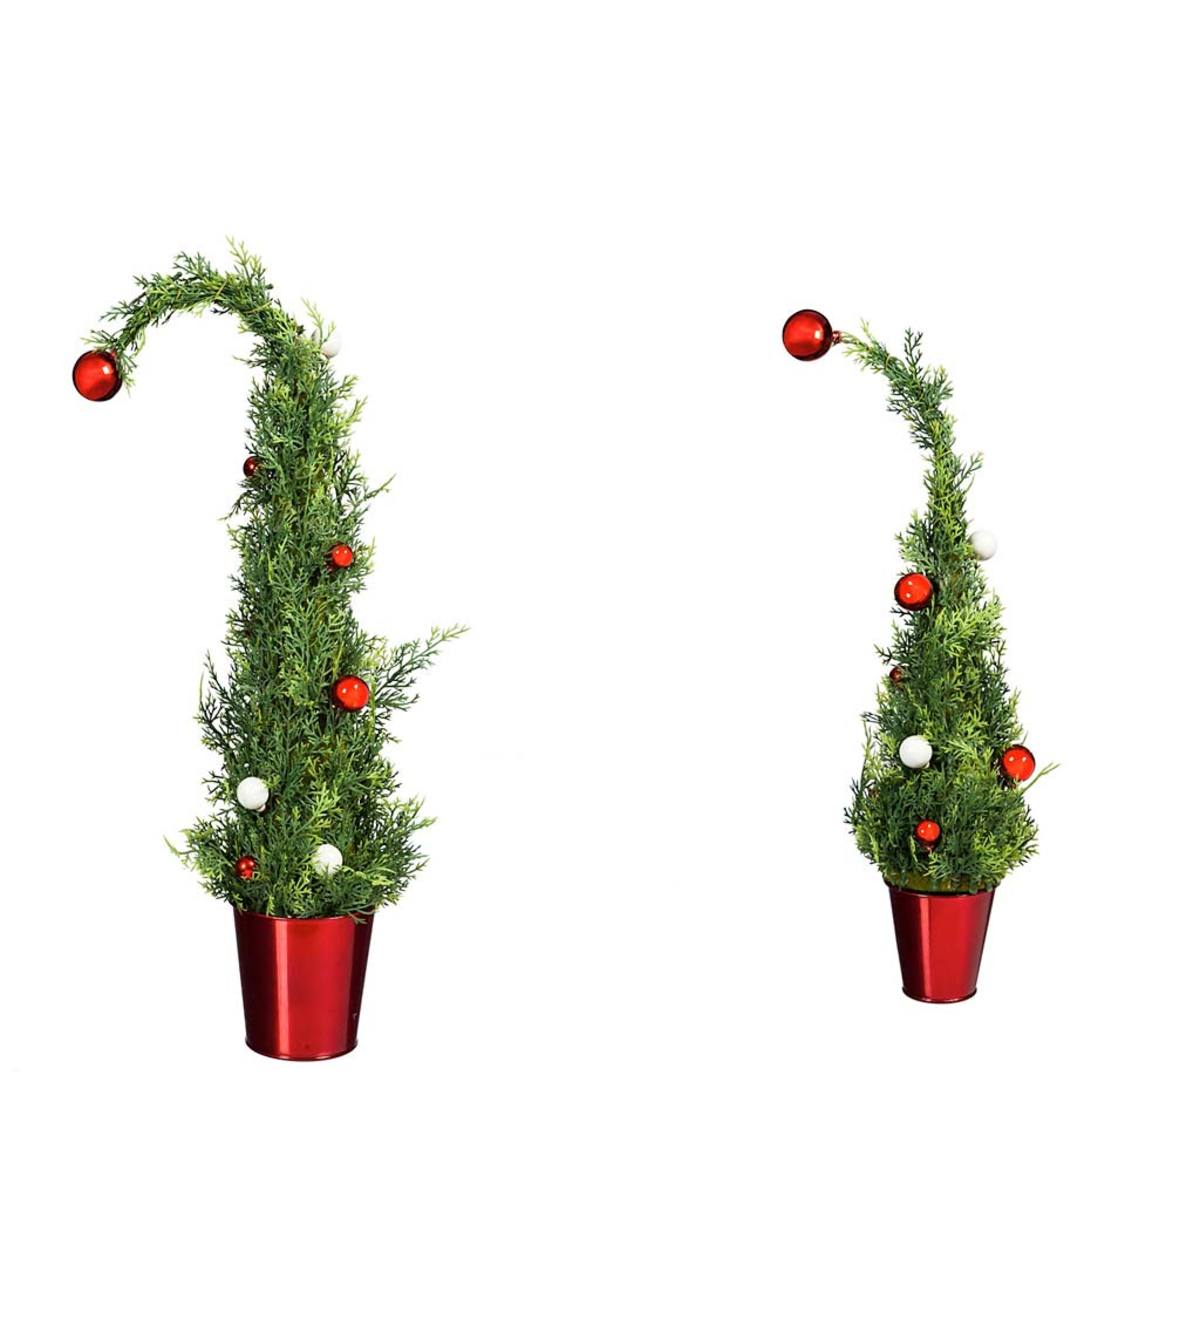 Faux Trees with Ornaments in Red Pots, Set of 2